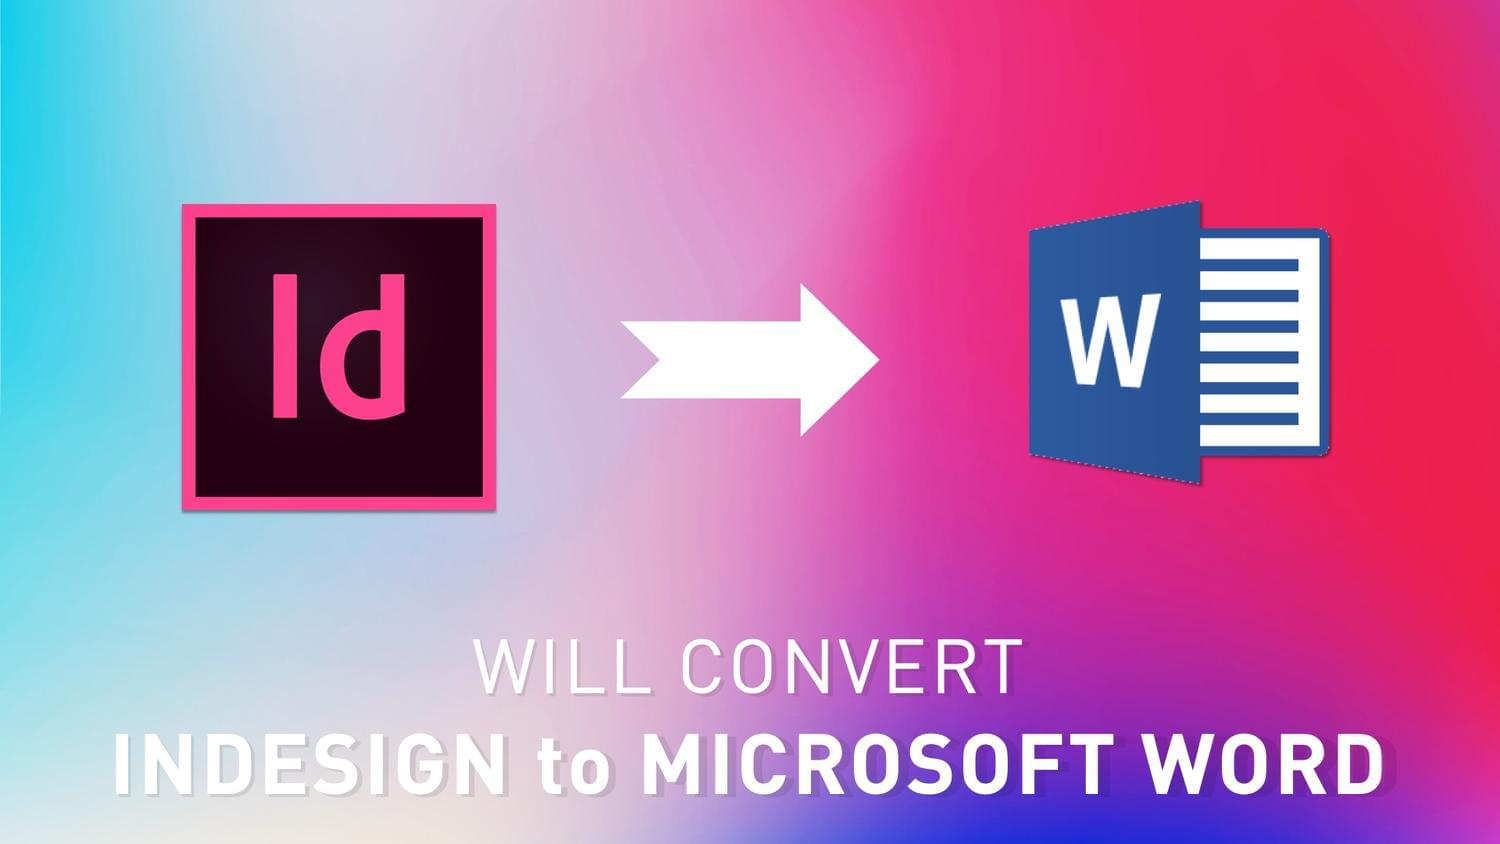 Convert InDesign to Microsoft Word by arvaone - 115100